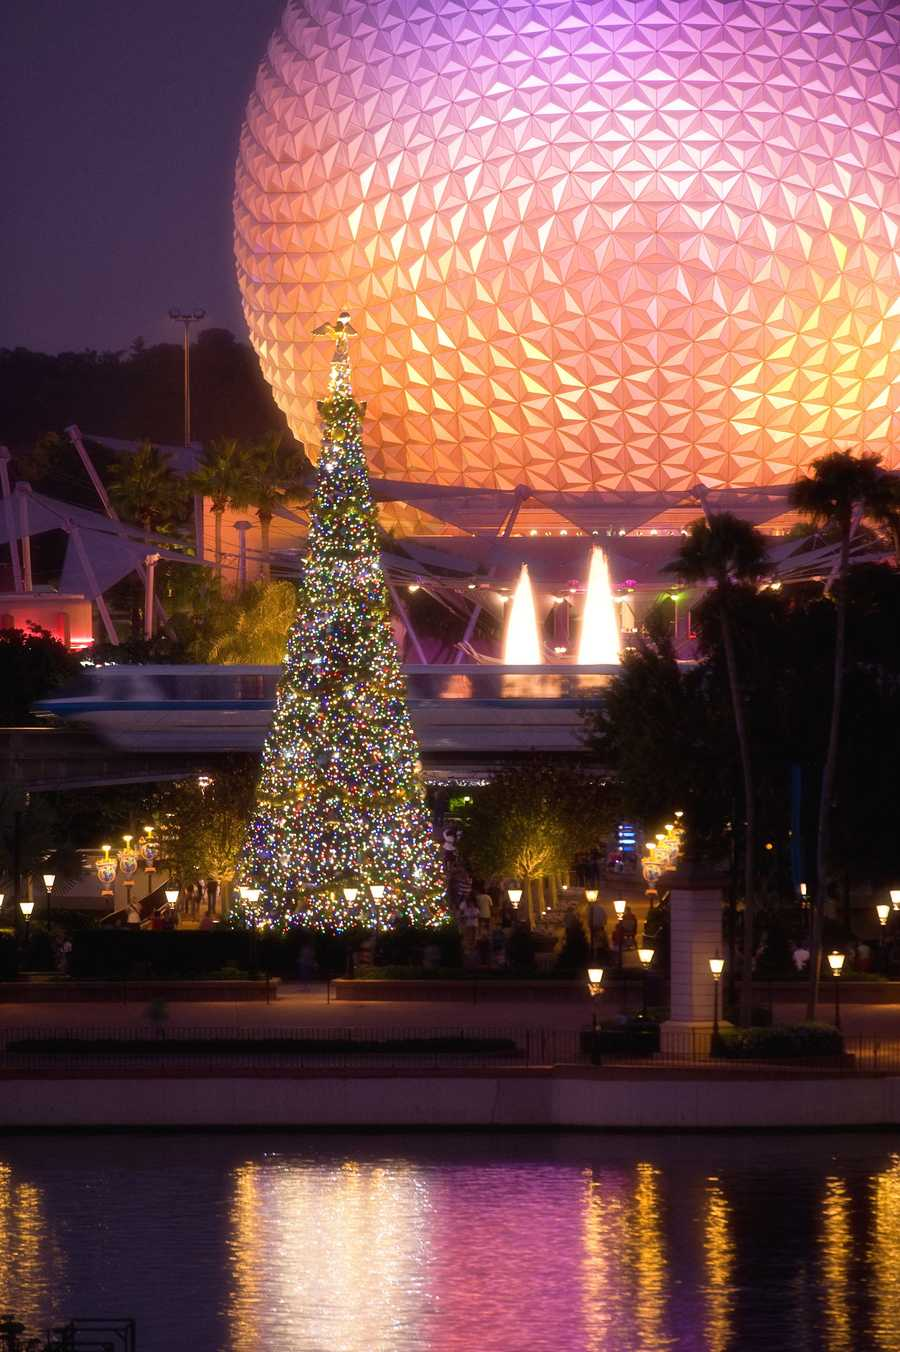 5. Holidays around the World returns to Epcot from Nov. 28 to Dec. 30. Storytellers from around the world share traditions and lore from their homeland throughout the World Showcase.